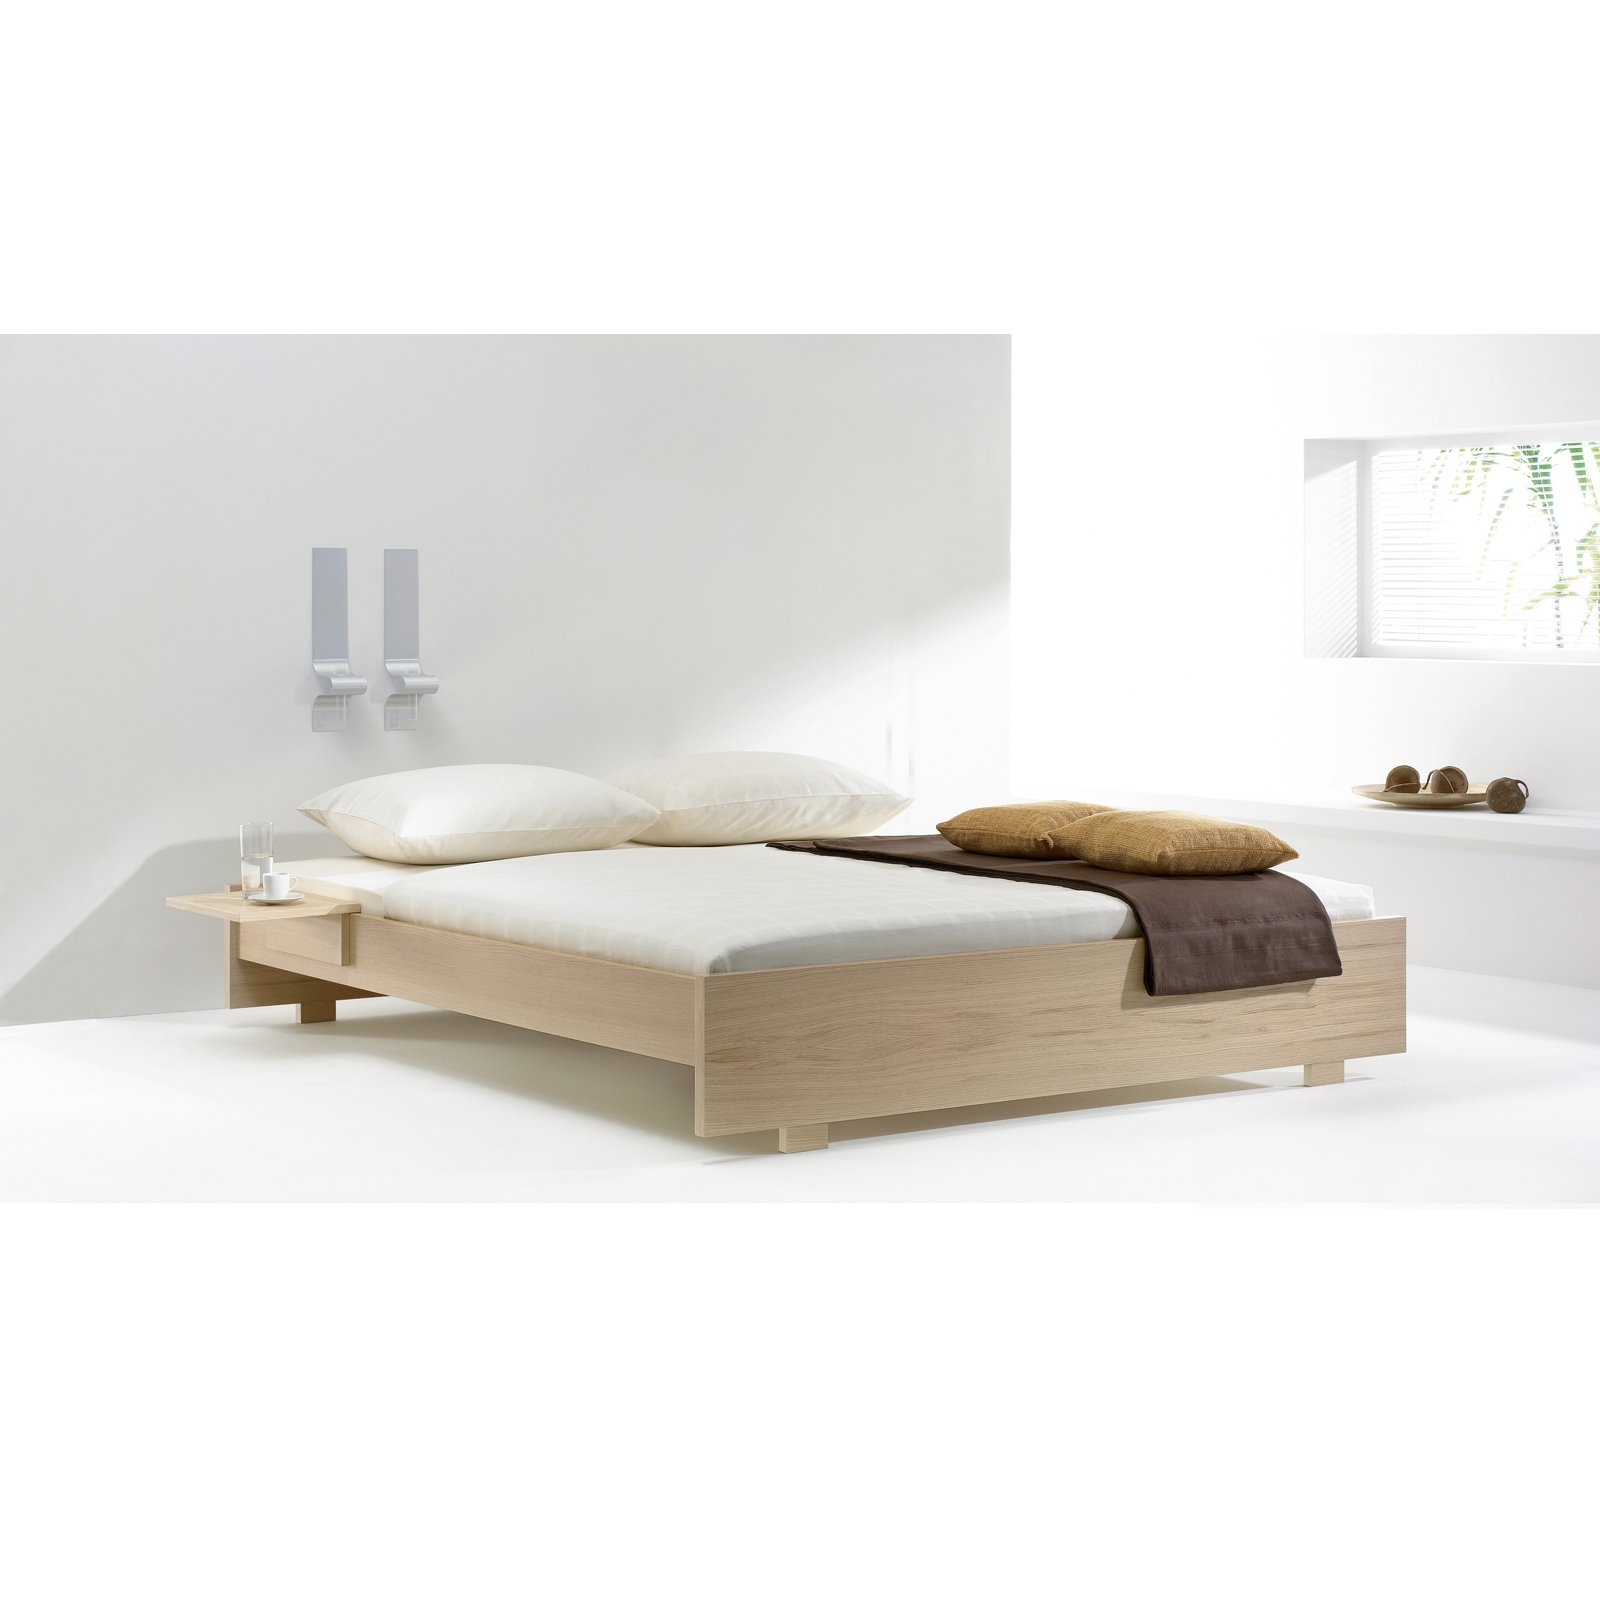 Low To Ground Queen Bed Frame1600 X 1600